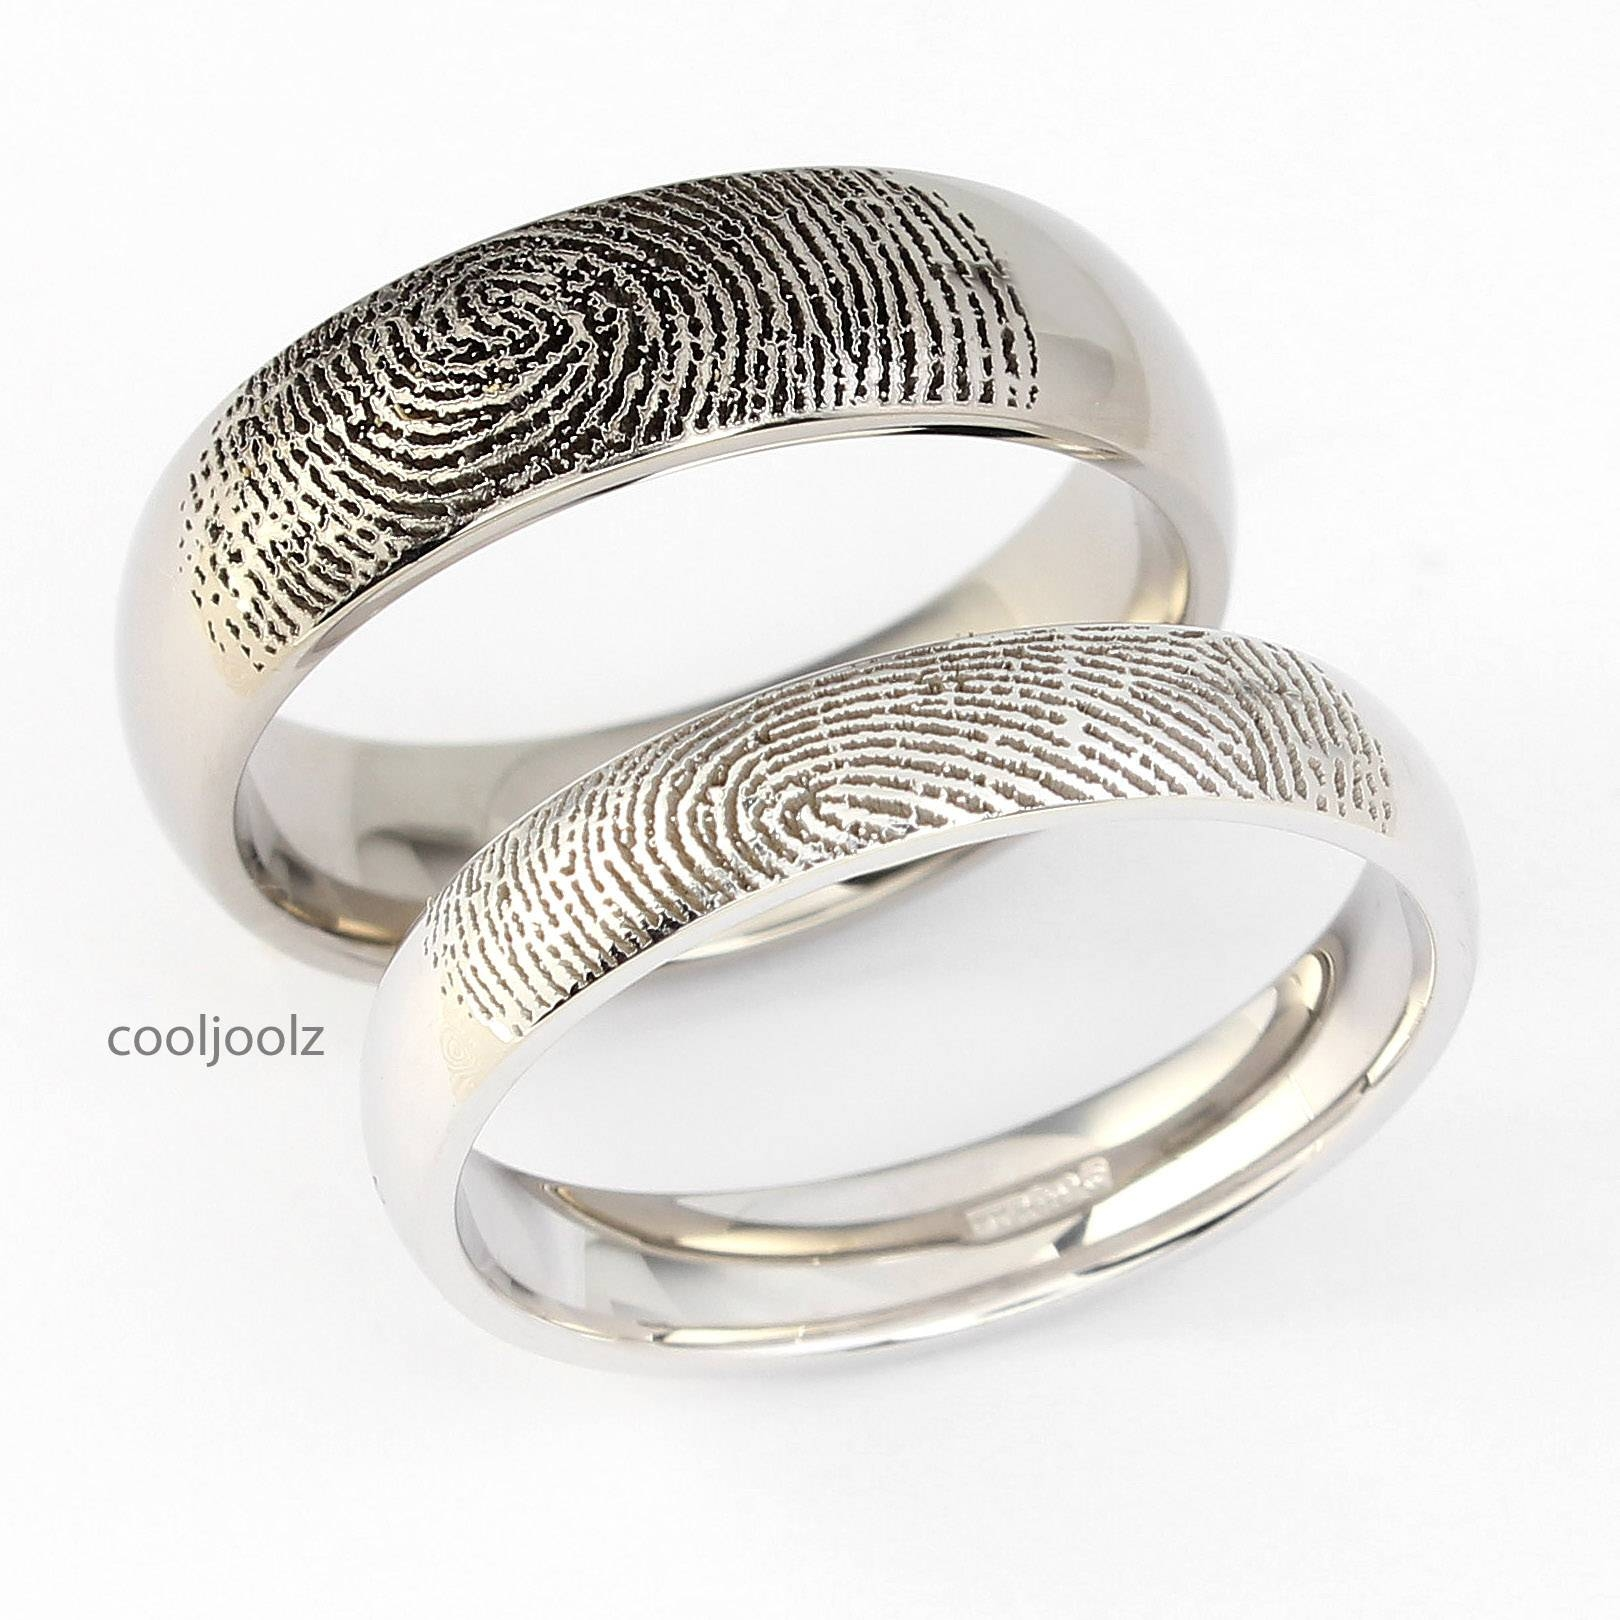 from great with dome weddings rings wedding set for your titanium mmfhntnlmtm jewelry occasion engraved customized of fingerprint band becoming choice personalised gold and fast itm they the shape rose are any